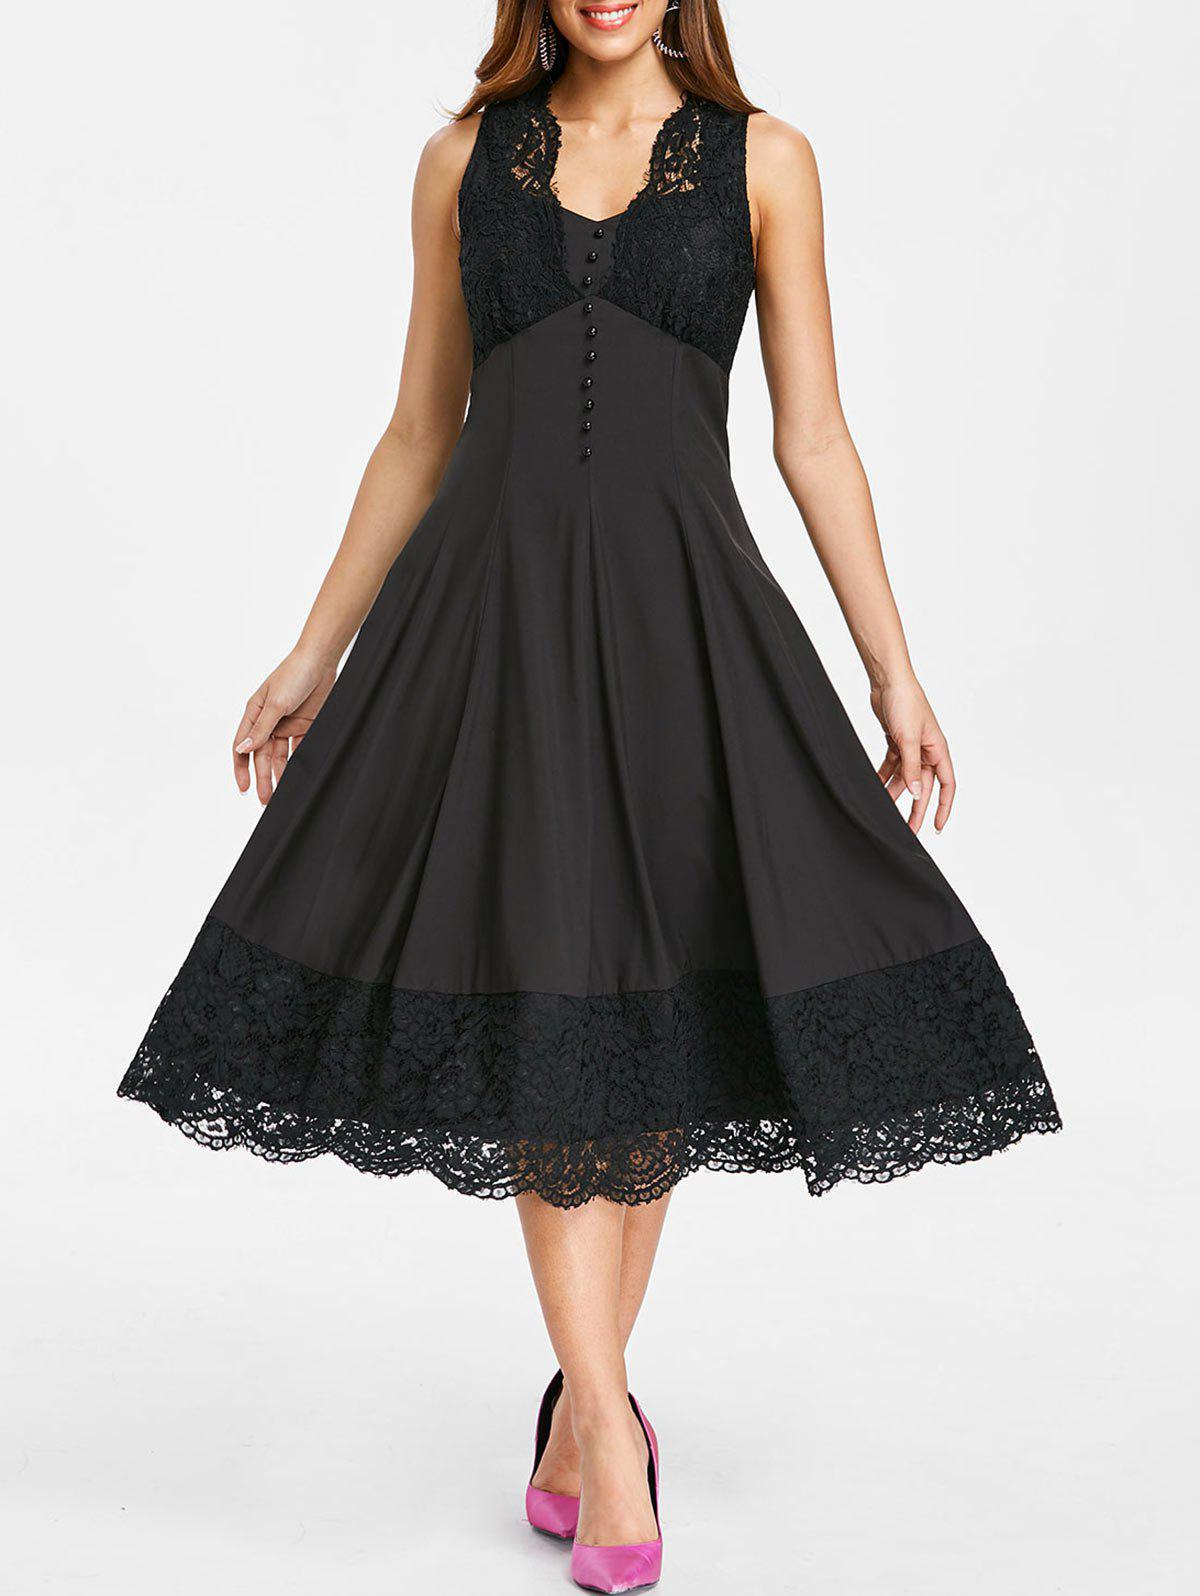 Affordable Retro Scalloped Lace Hemline Sleeveless Dress